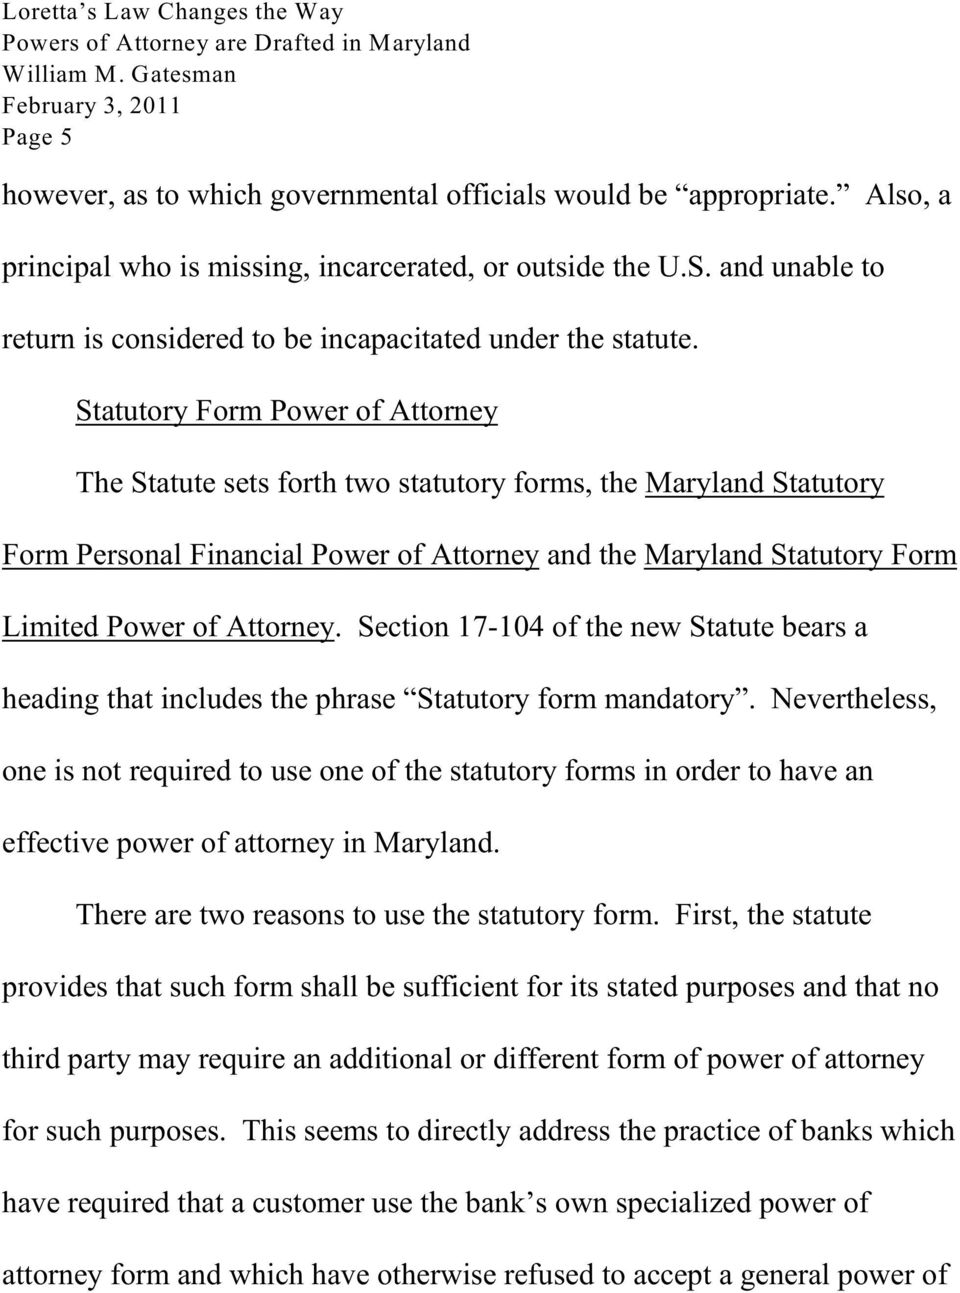 Statutory Form Power of Attorney The Statute sets forth two statutory forms, the Maryland Statutory Form Personal Financial Power of Attorney and the Maryland Statutory Form Limited Power of Attorney.